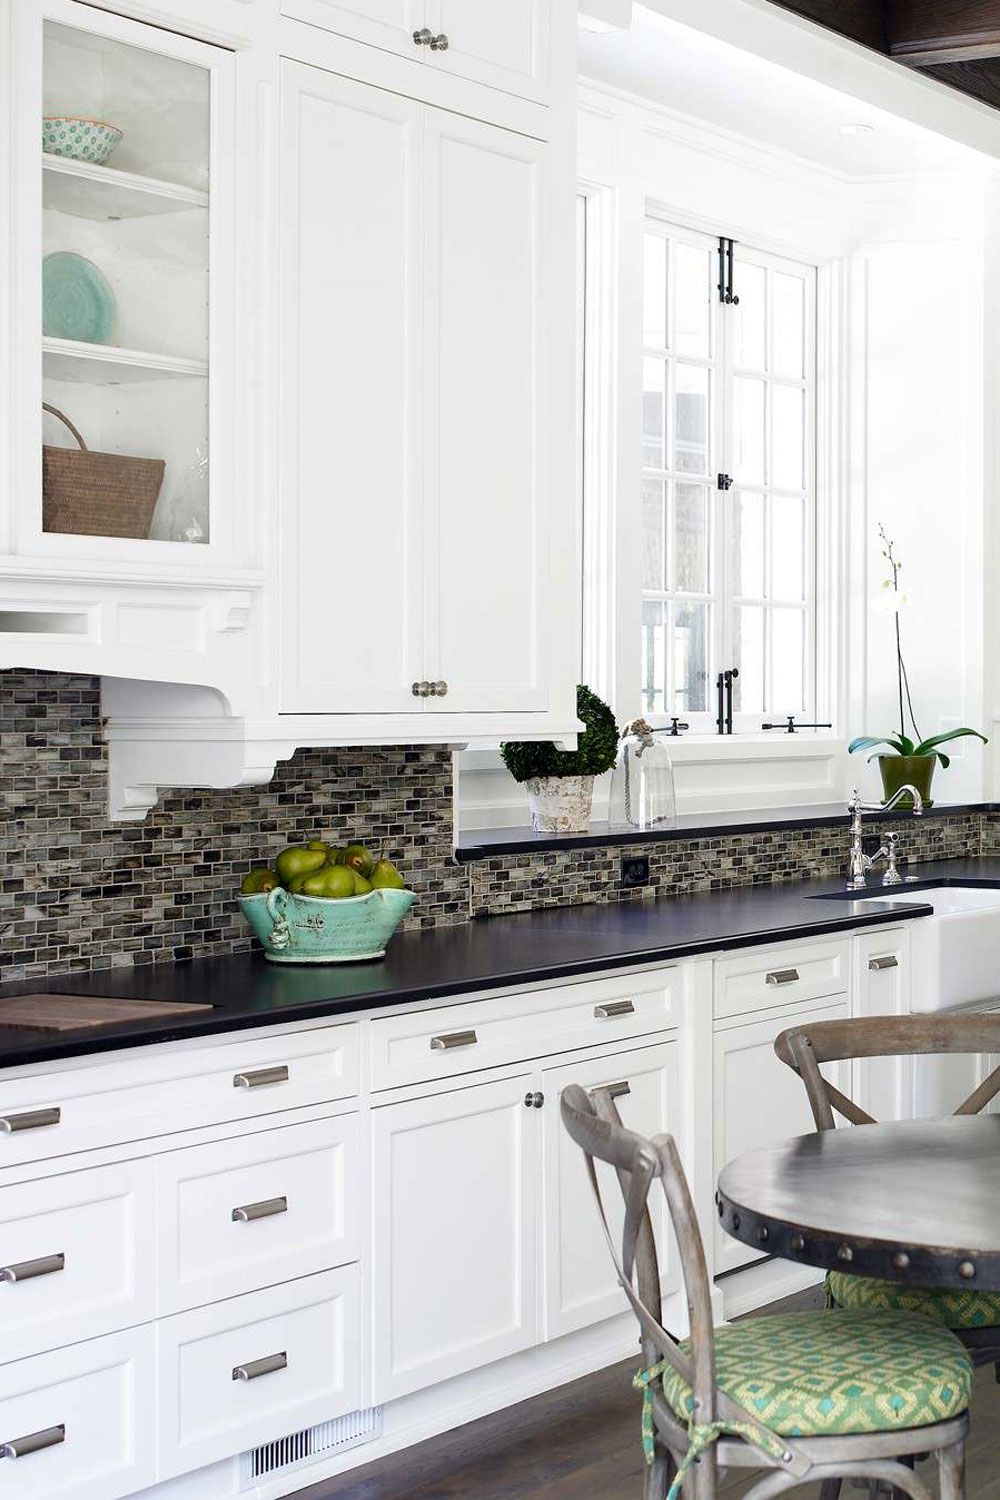 50+ Black Countertop Backsplash Ideas (Tile Designs, Tips ... on Backsplash Ideas With Black Countertops  id=29956